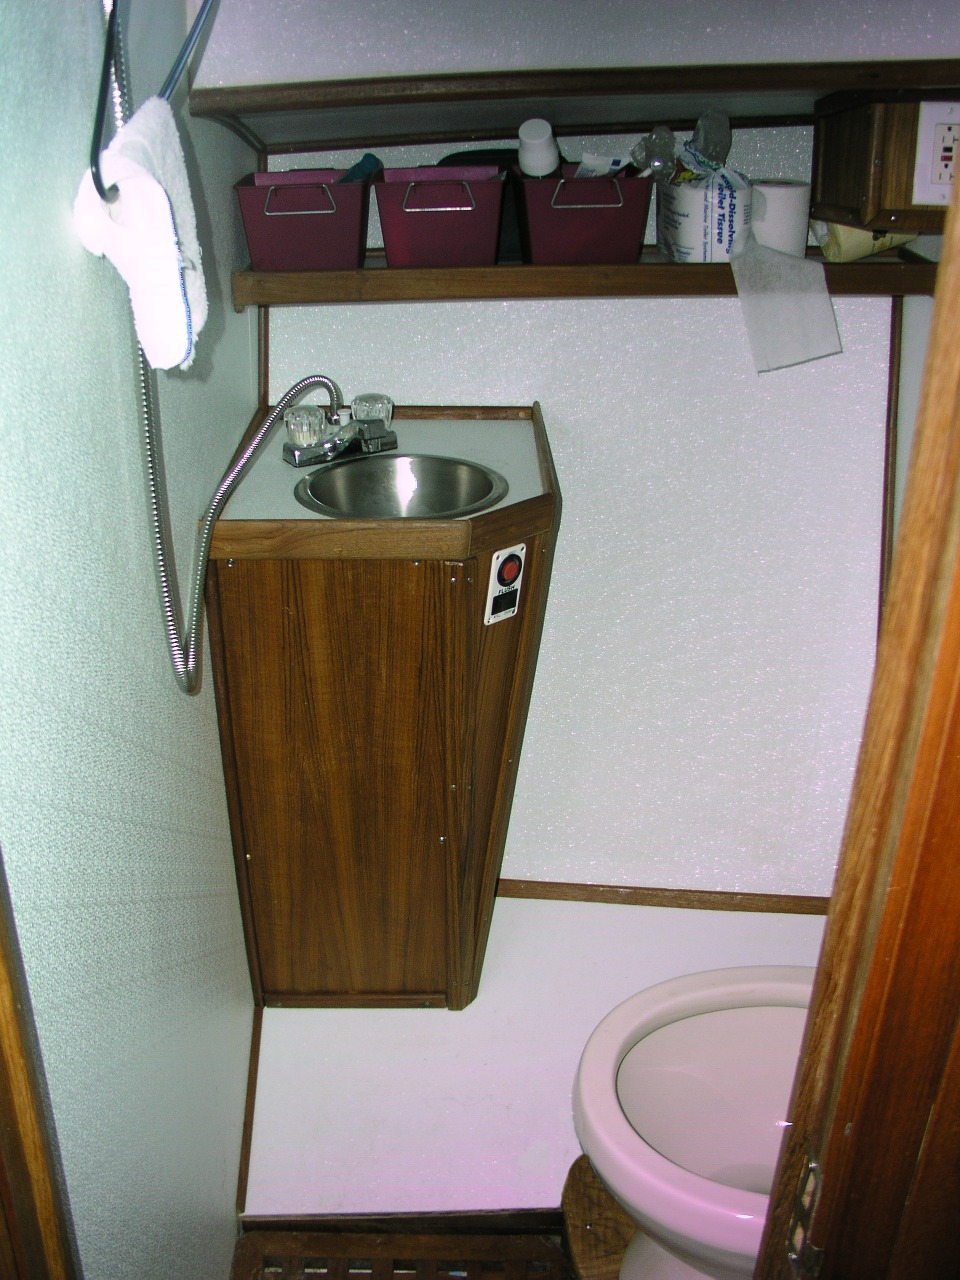 Pedestal+Sink+Storage+Shelf Pedestal Sink Storage Shelf http://www ...